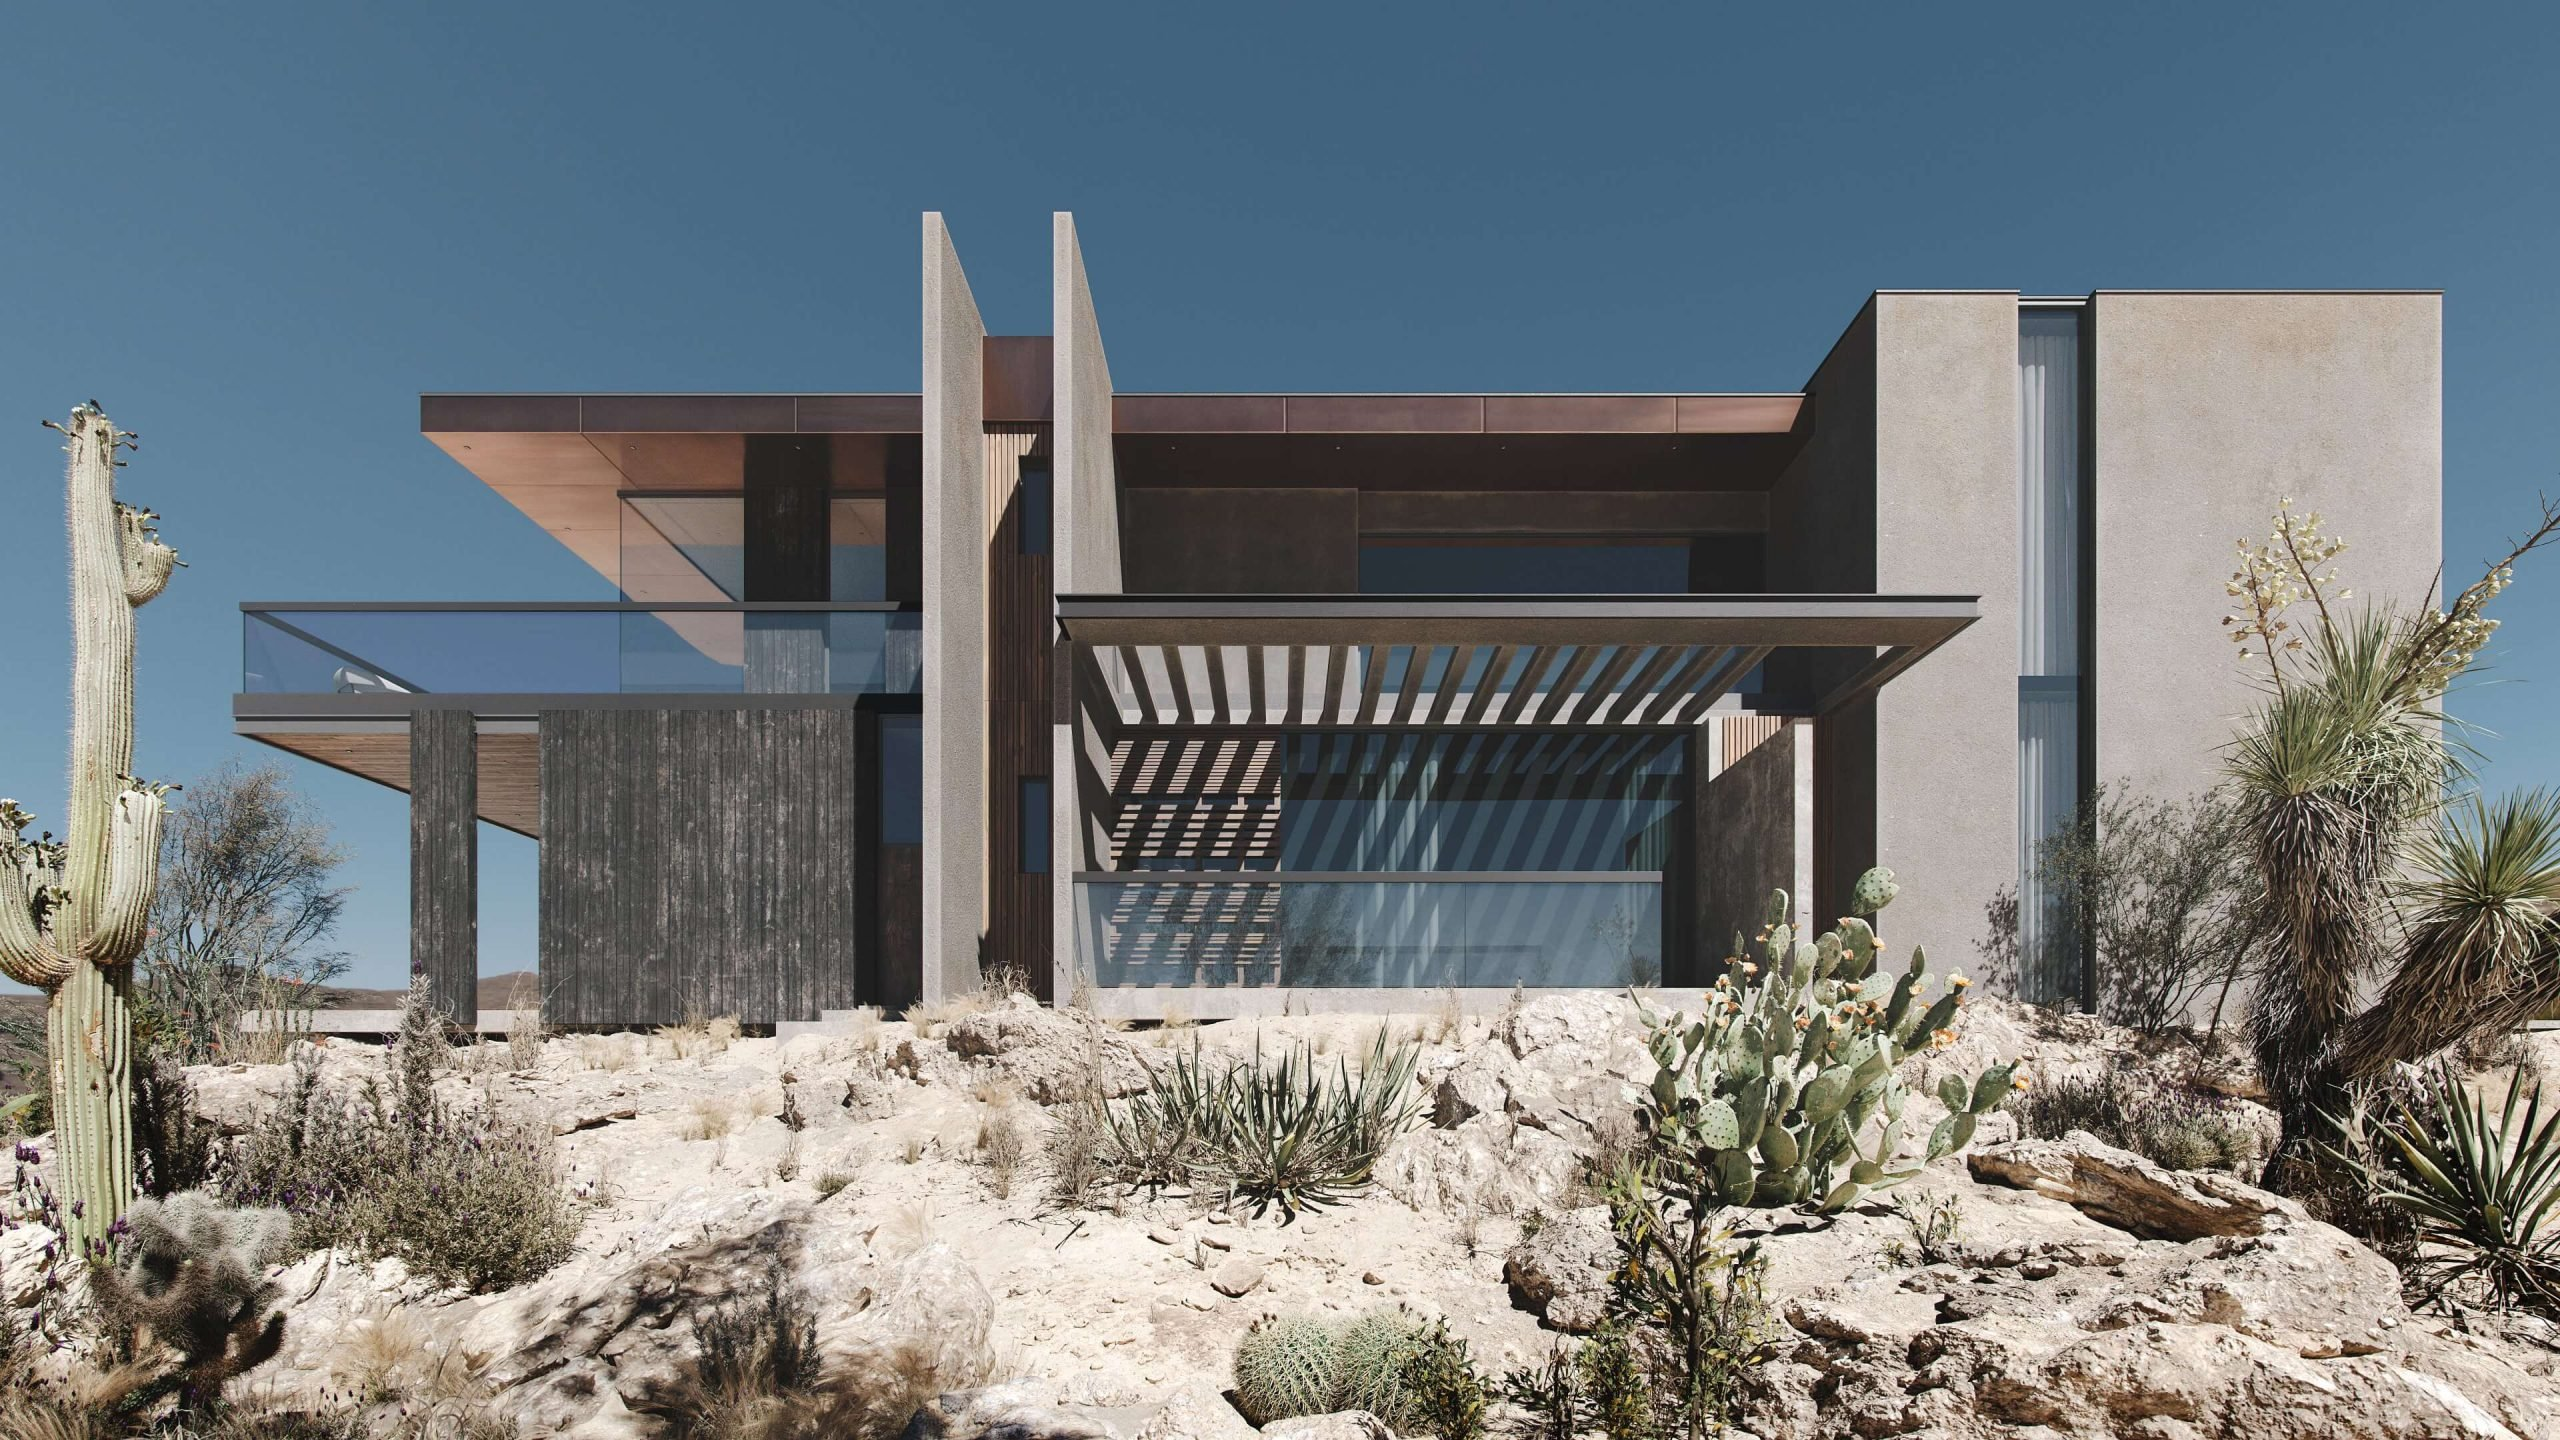 3D Rendering Of An Modern-Style Villa In A Desert